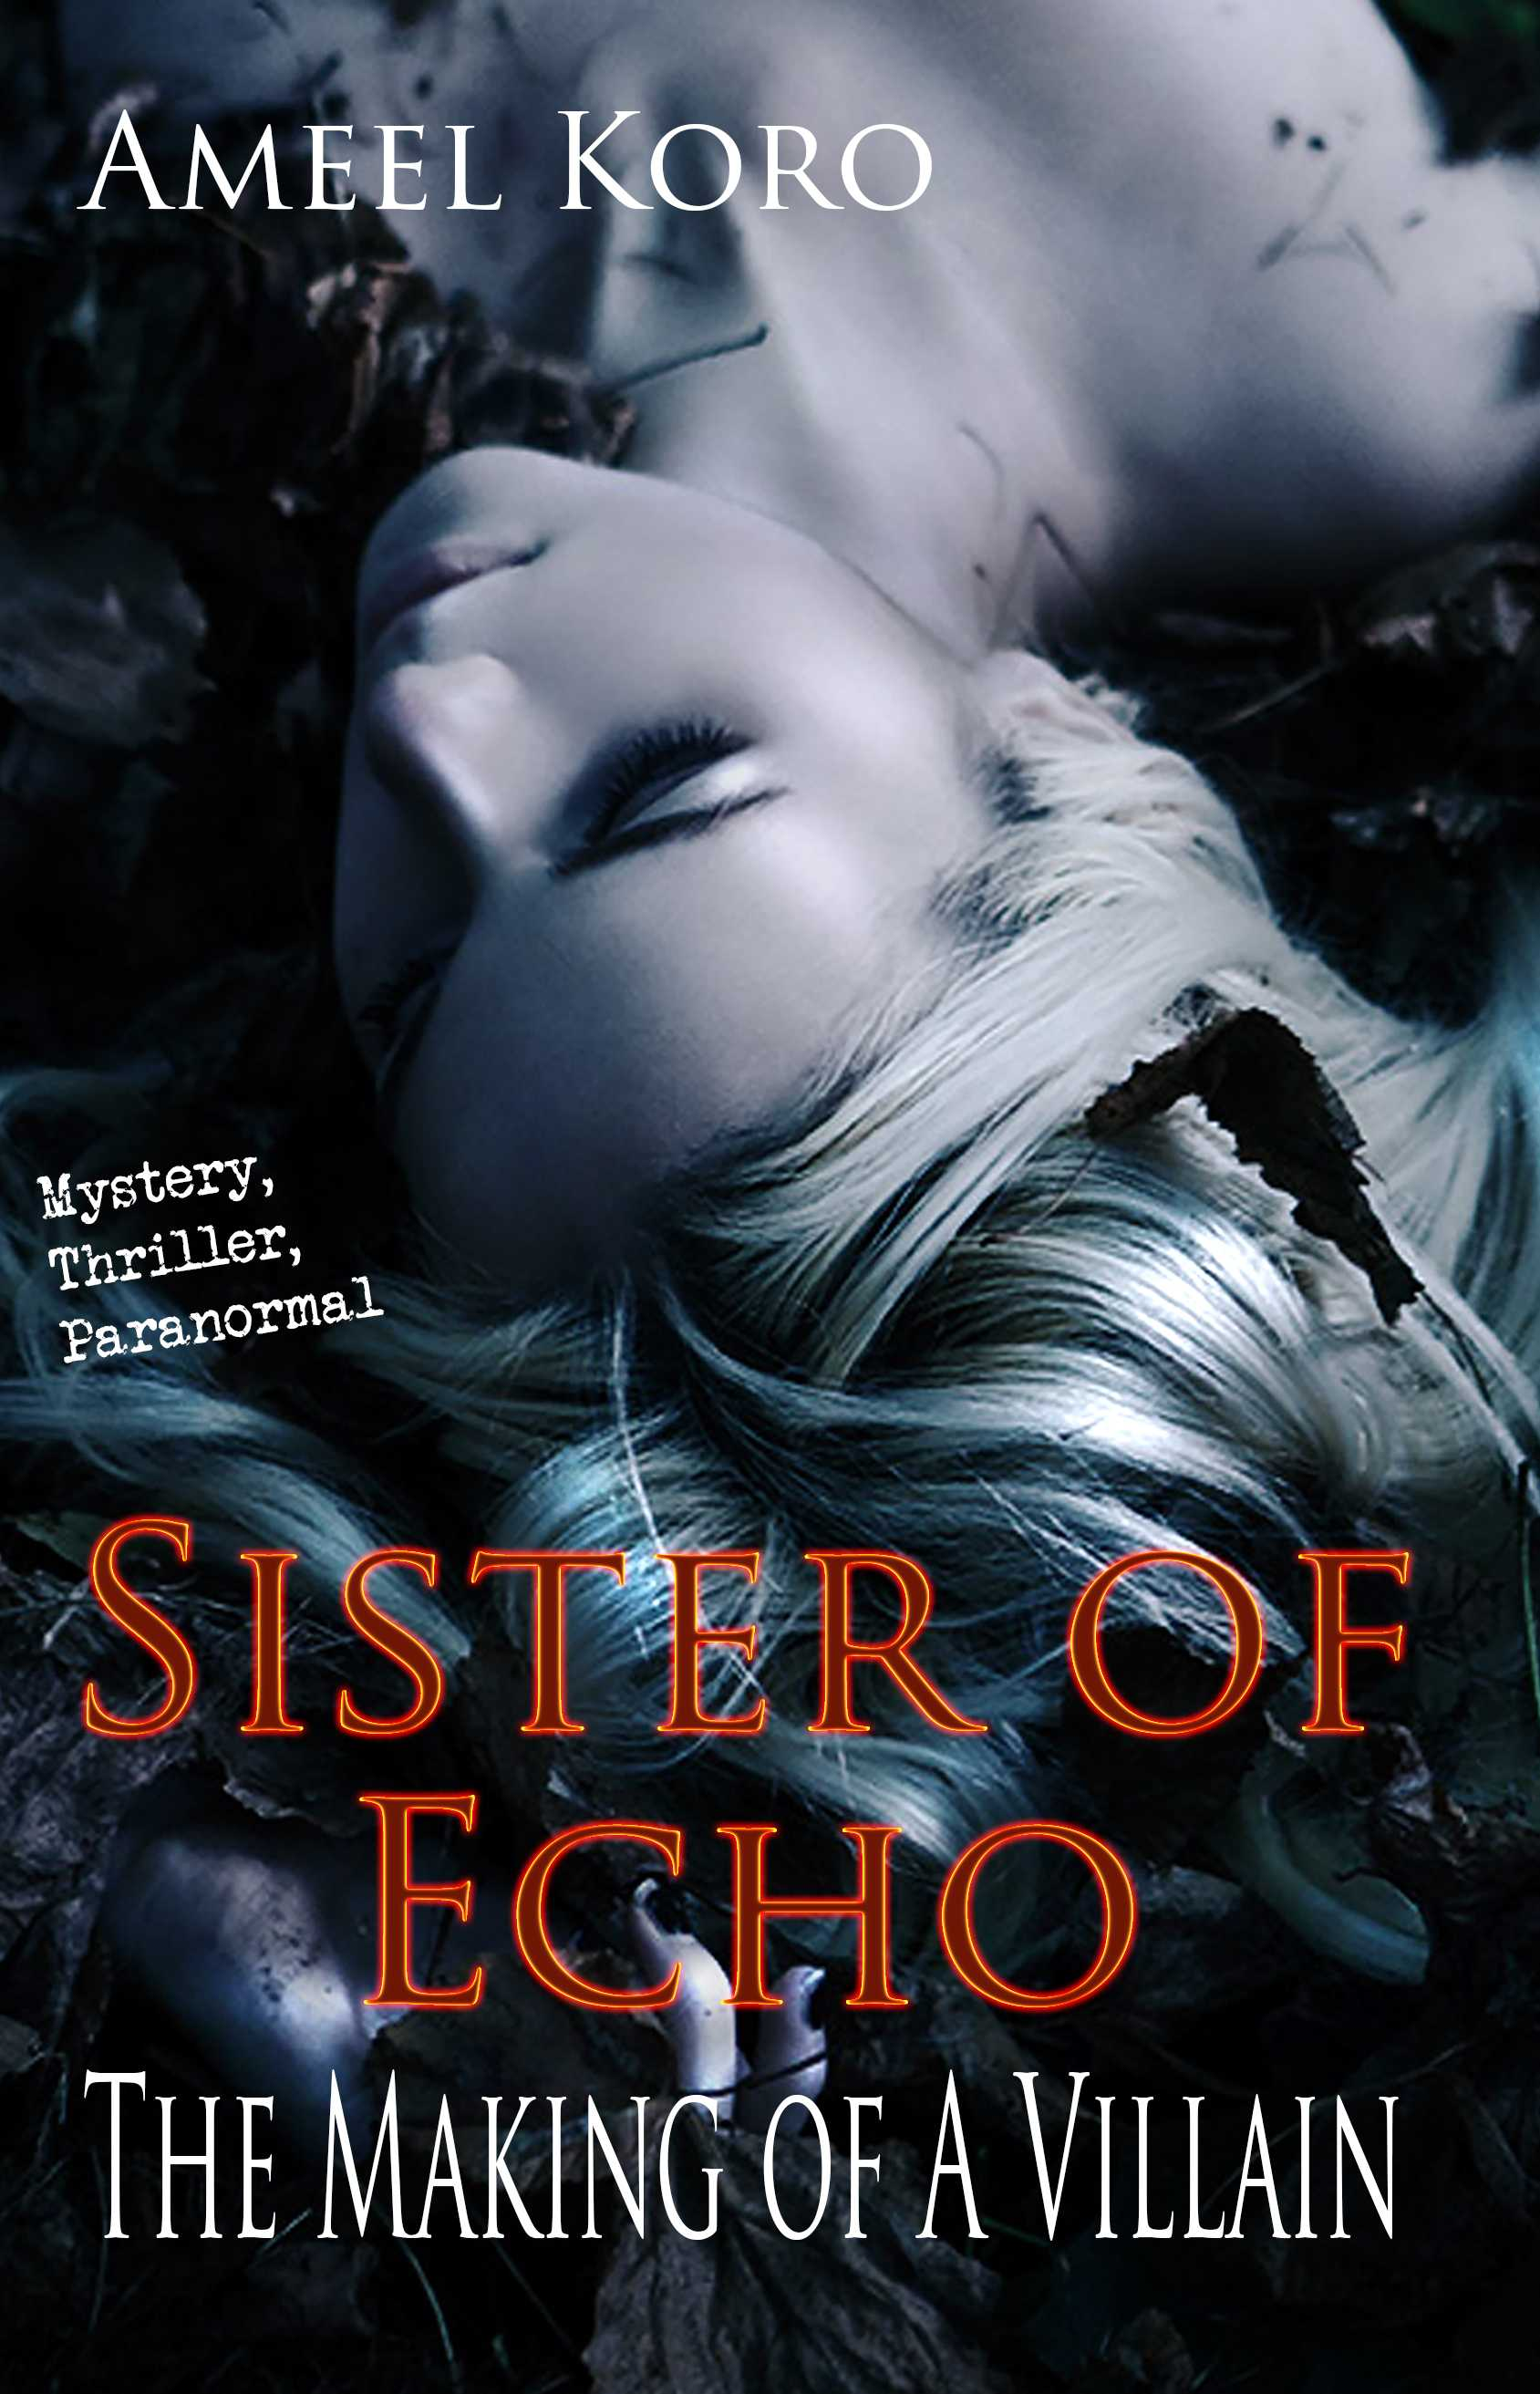 sister of echo - the making of a villain